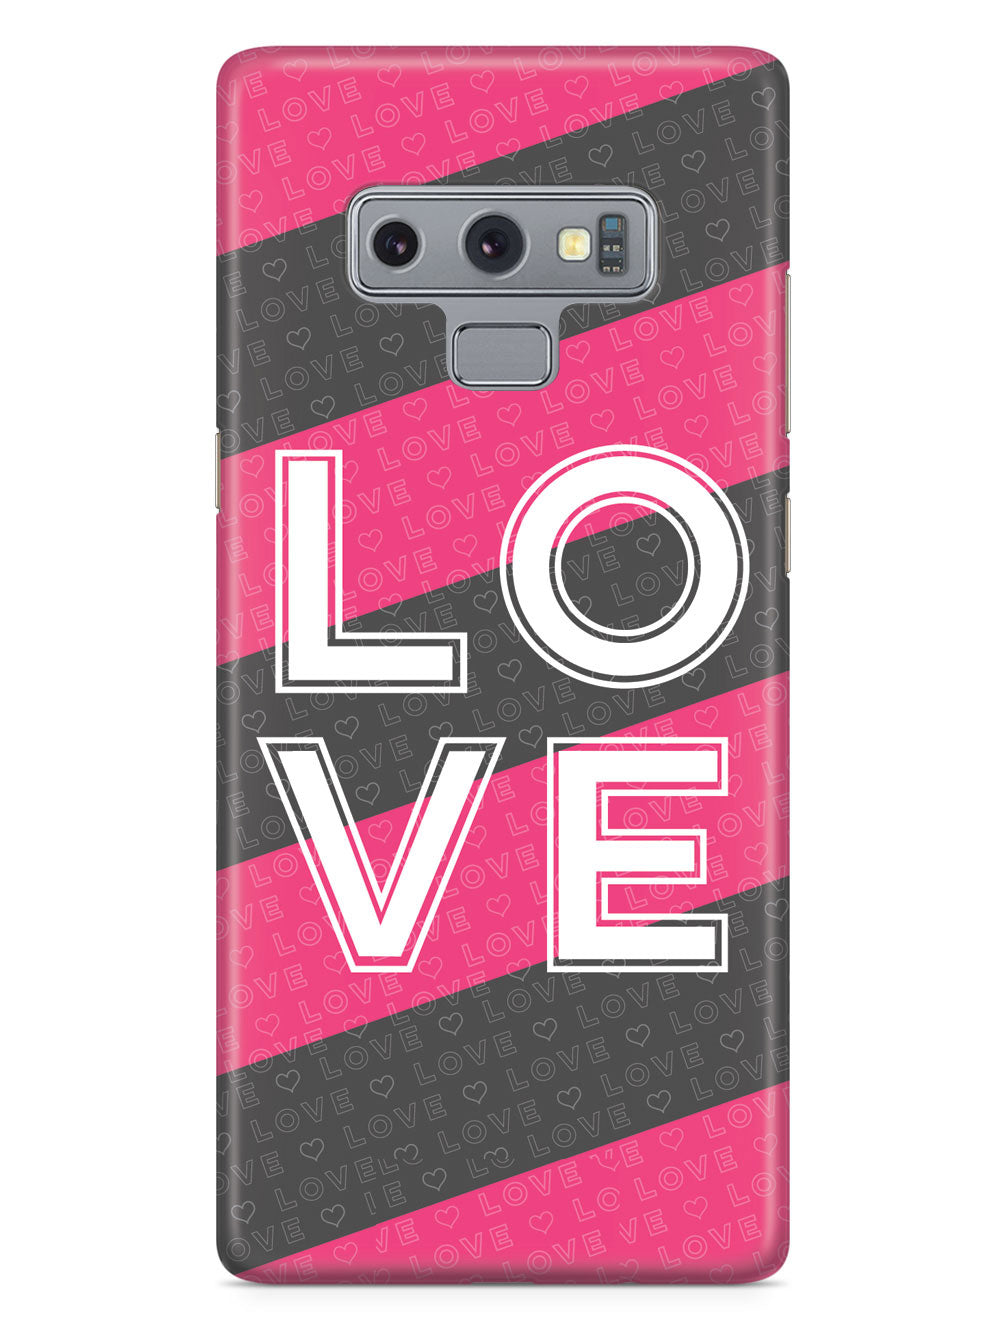 LOVE - Pink & Gray Striped Case